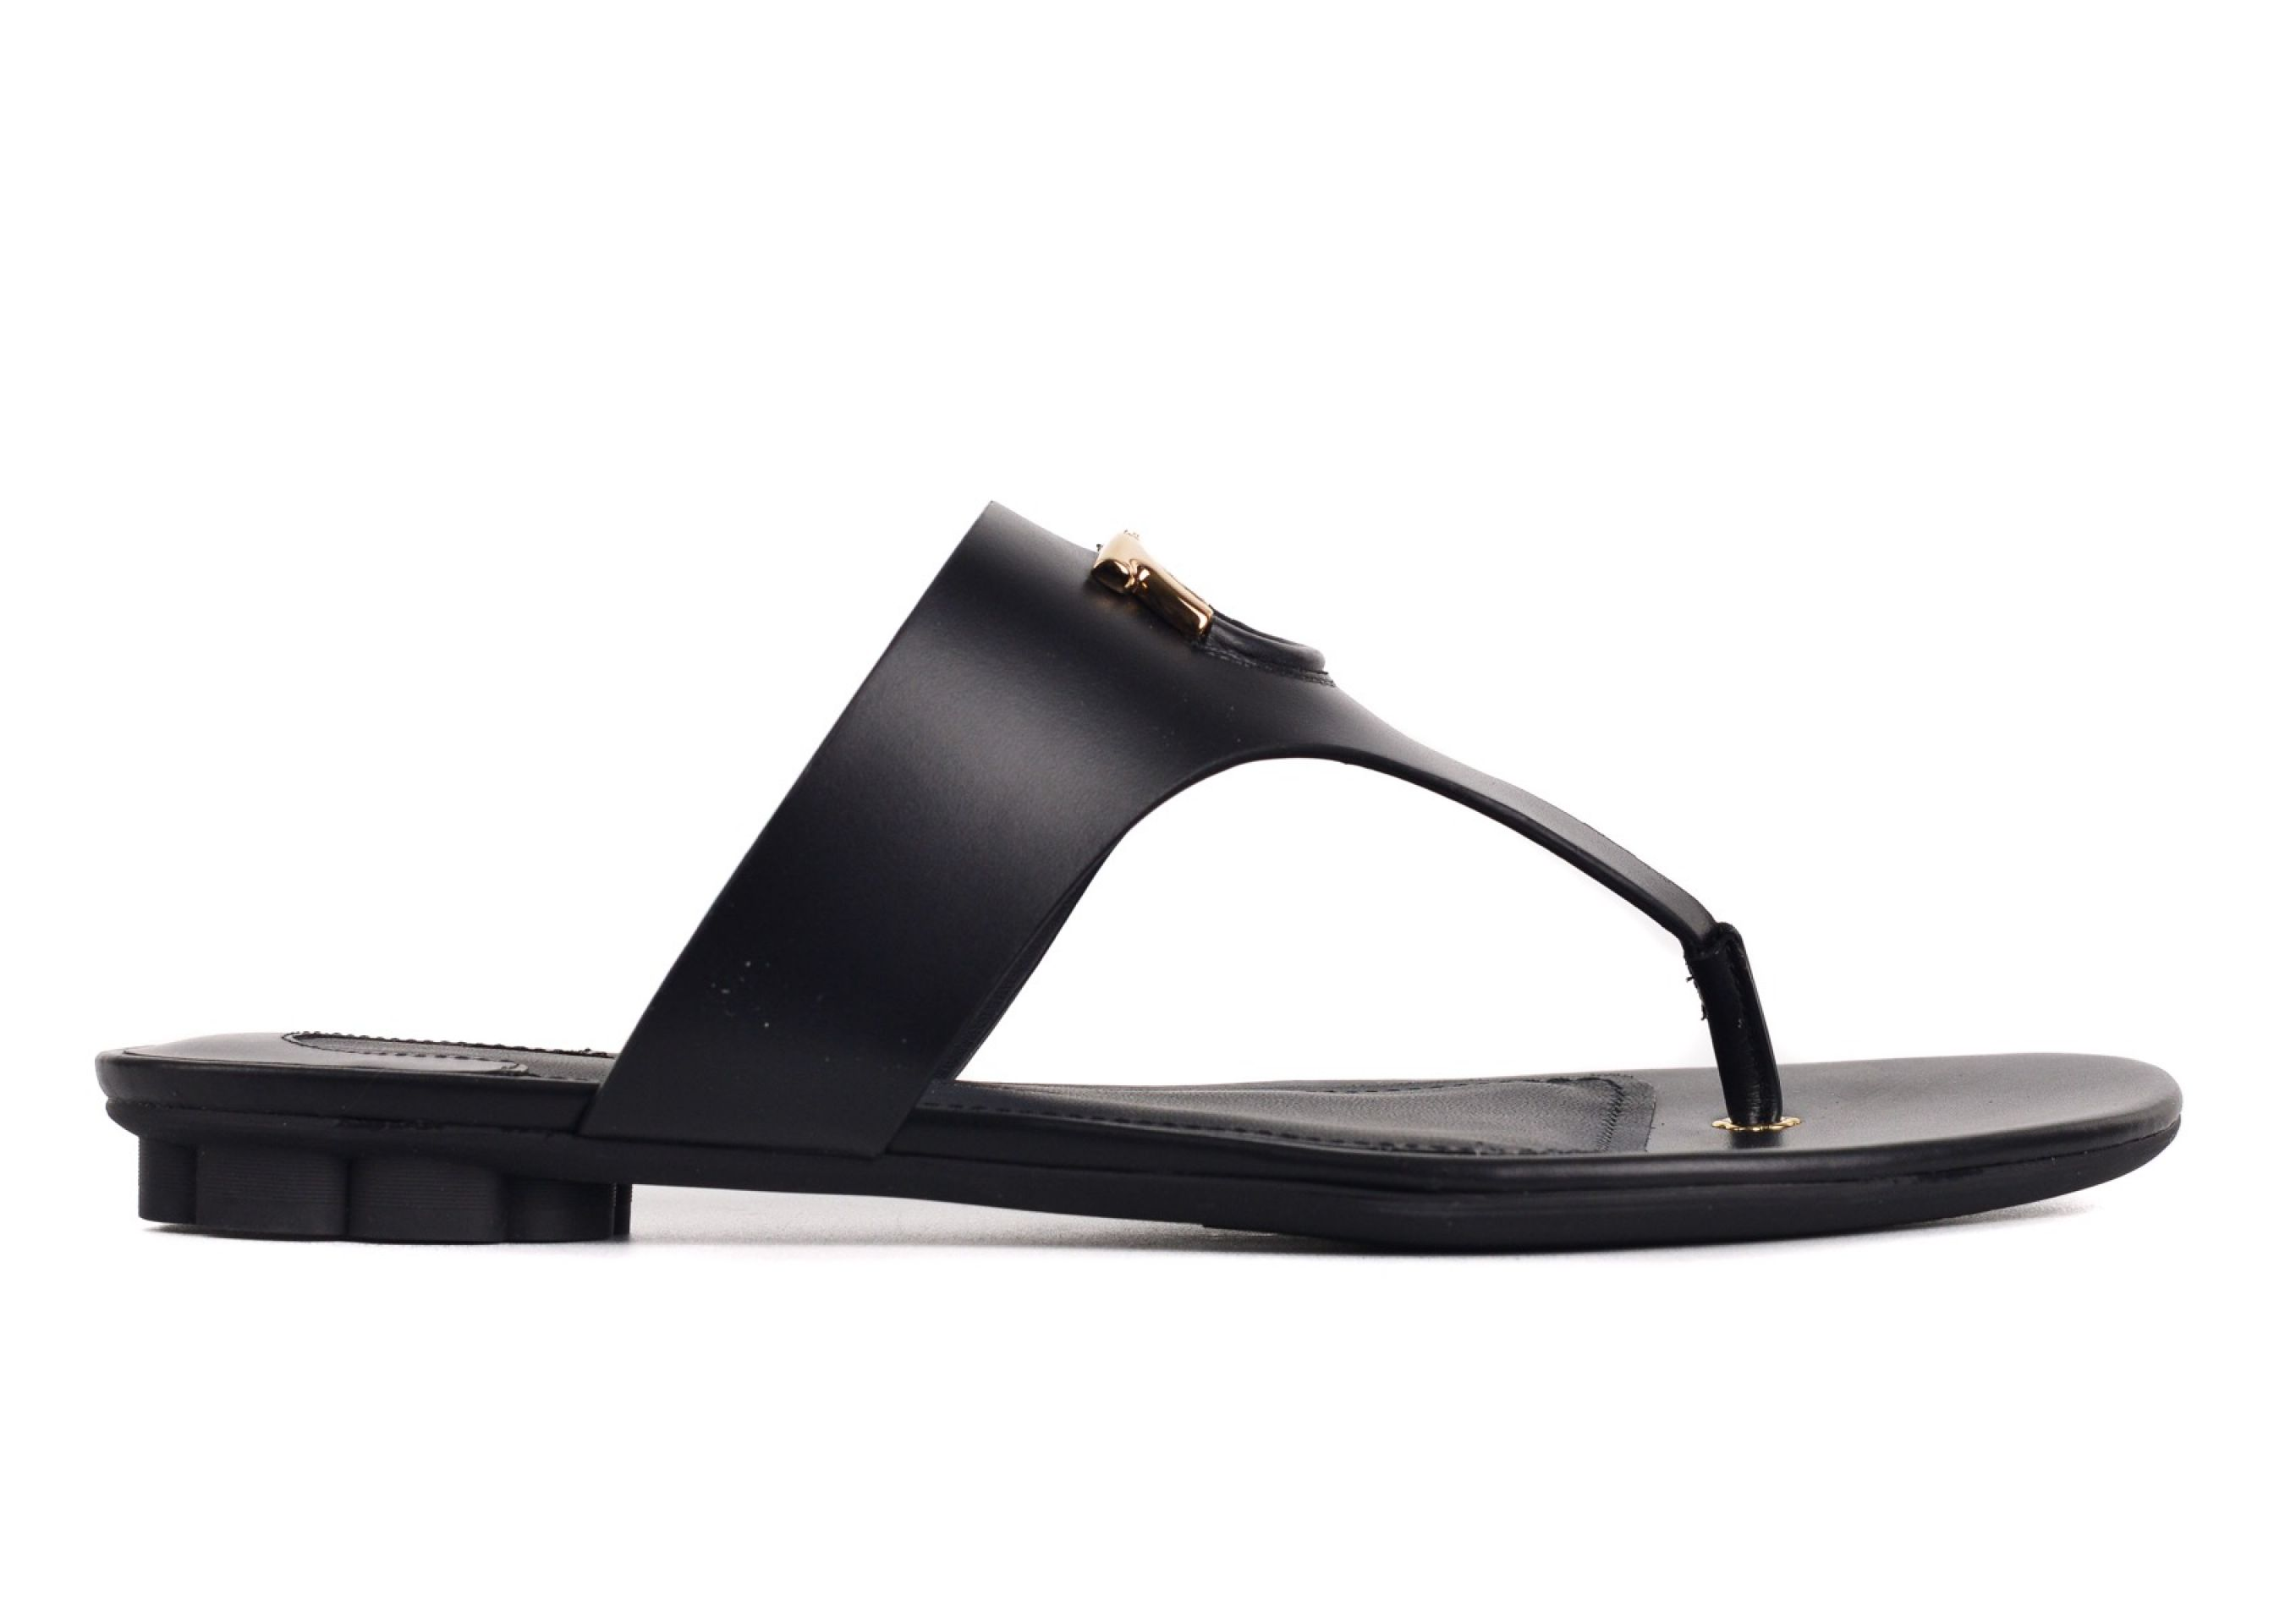 SALVATORE FERRAGAMO WOMEN'S ENFOLA BLACK LEATHER FLAT T-BAR SANDALS